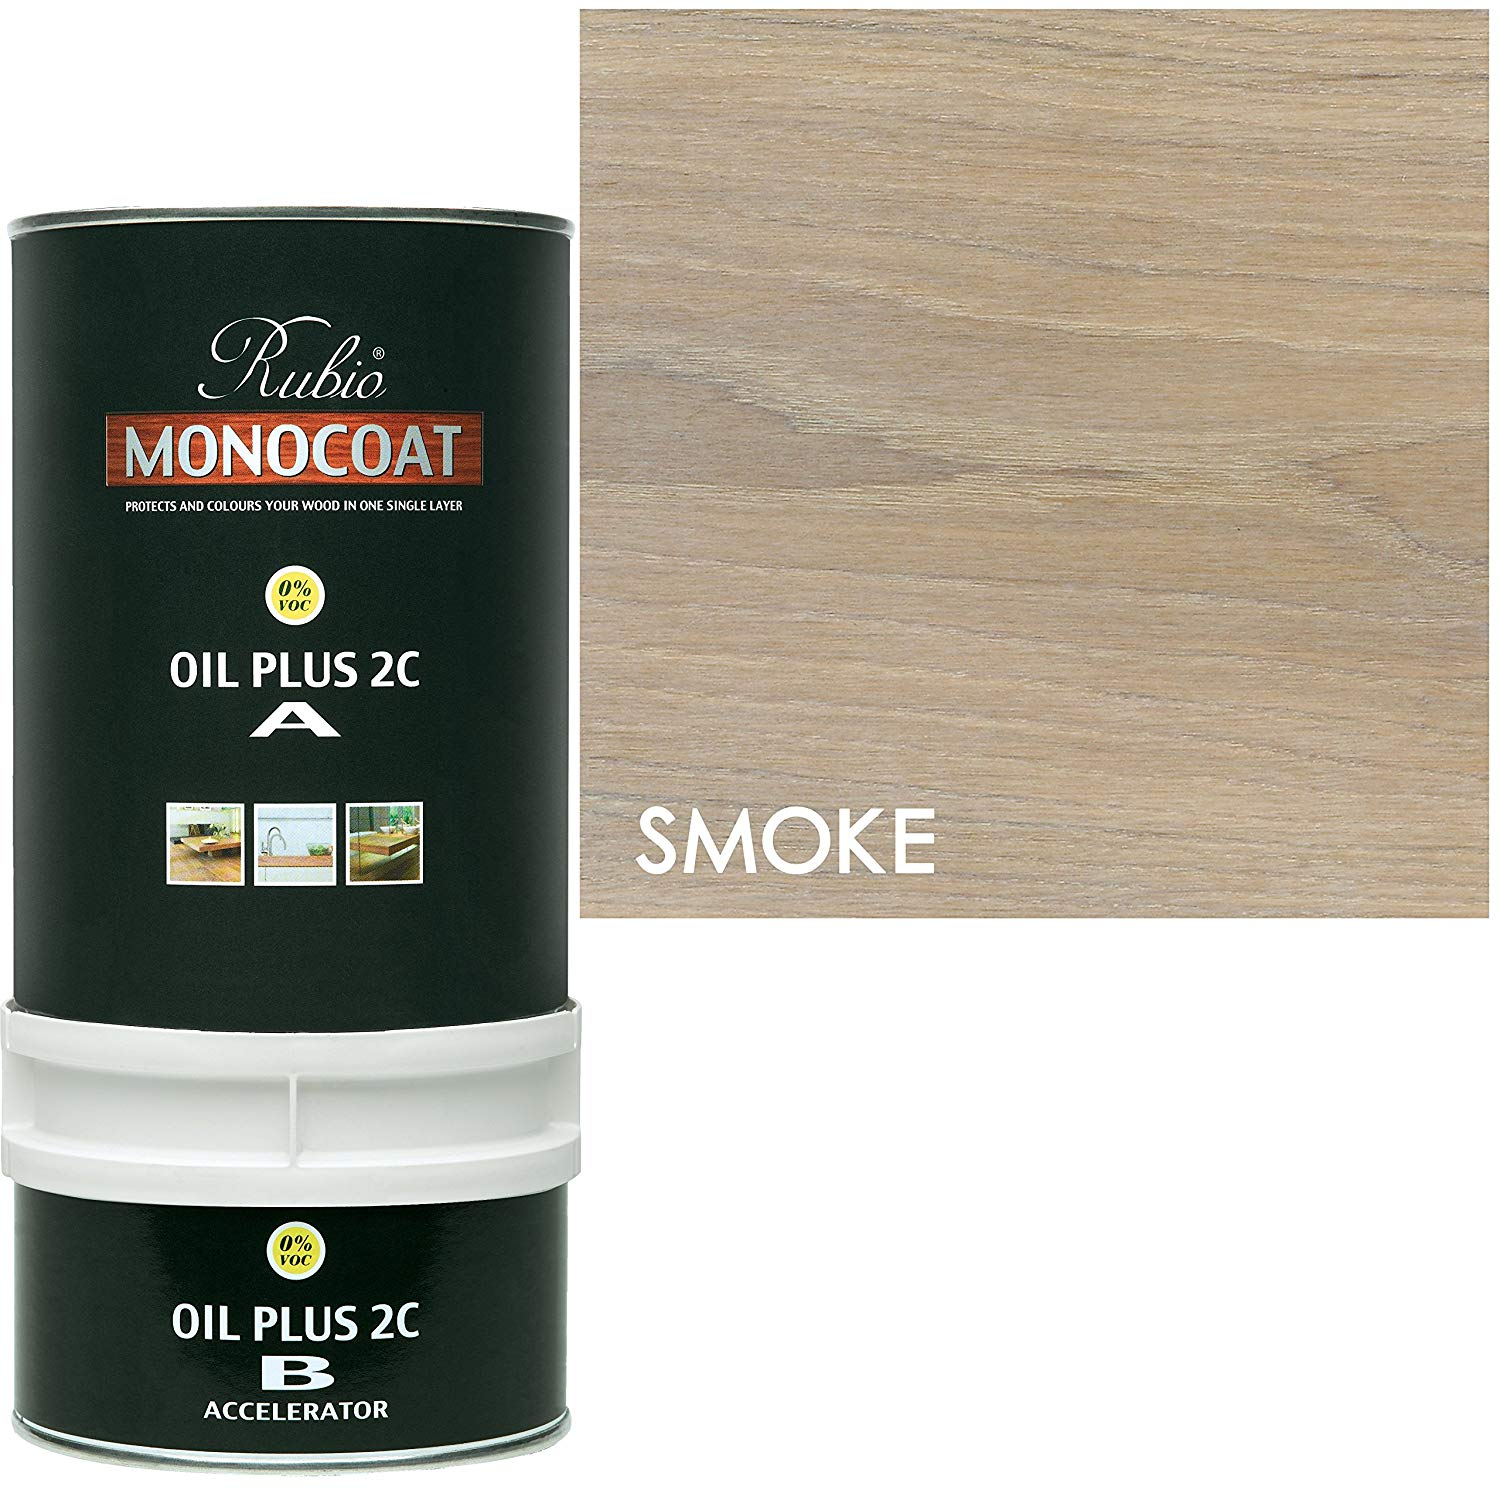 Rubio Monocoat Oil Plus 2C - Smoke